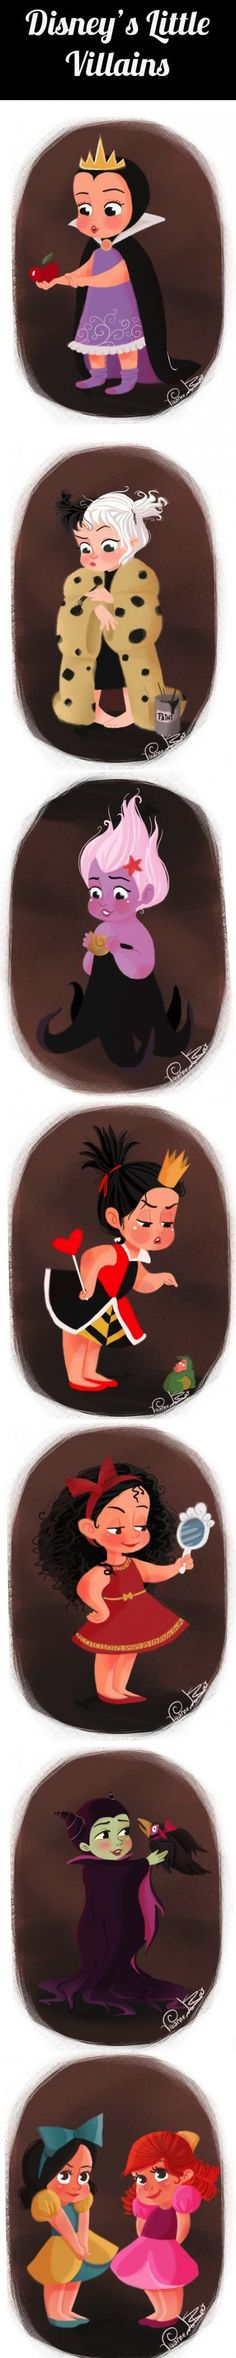 Seven Disney Villains as Cute Little Kids…So cute it is hard to believe they grow up so bad.